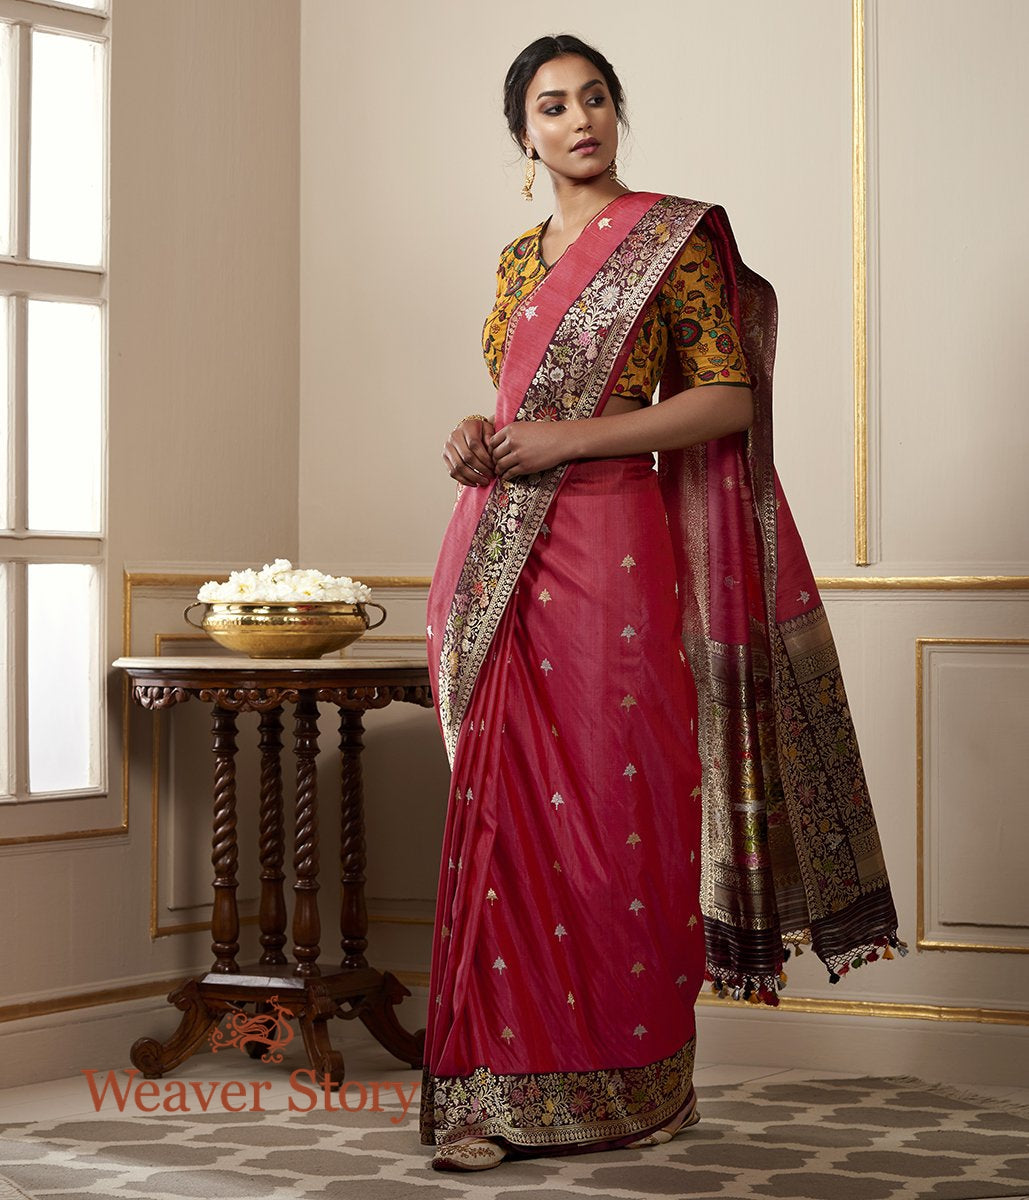 Handwoven Coral Red Tusser Saree with Kadhiyal Border